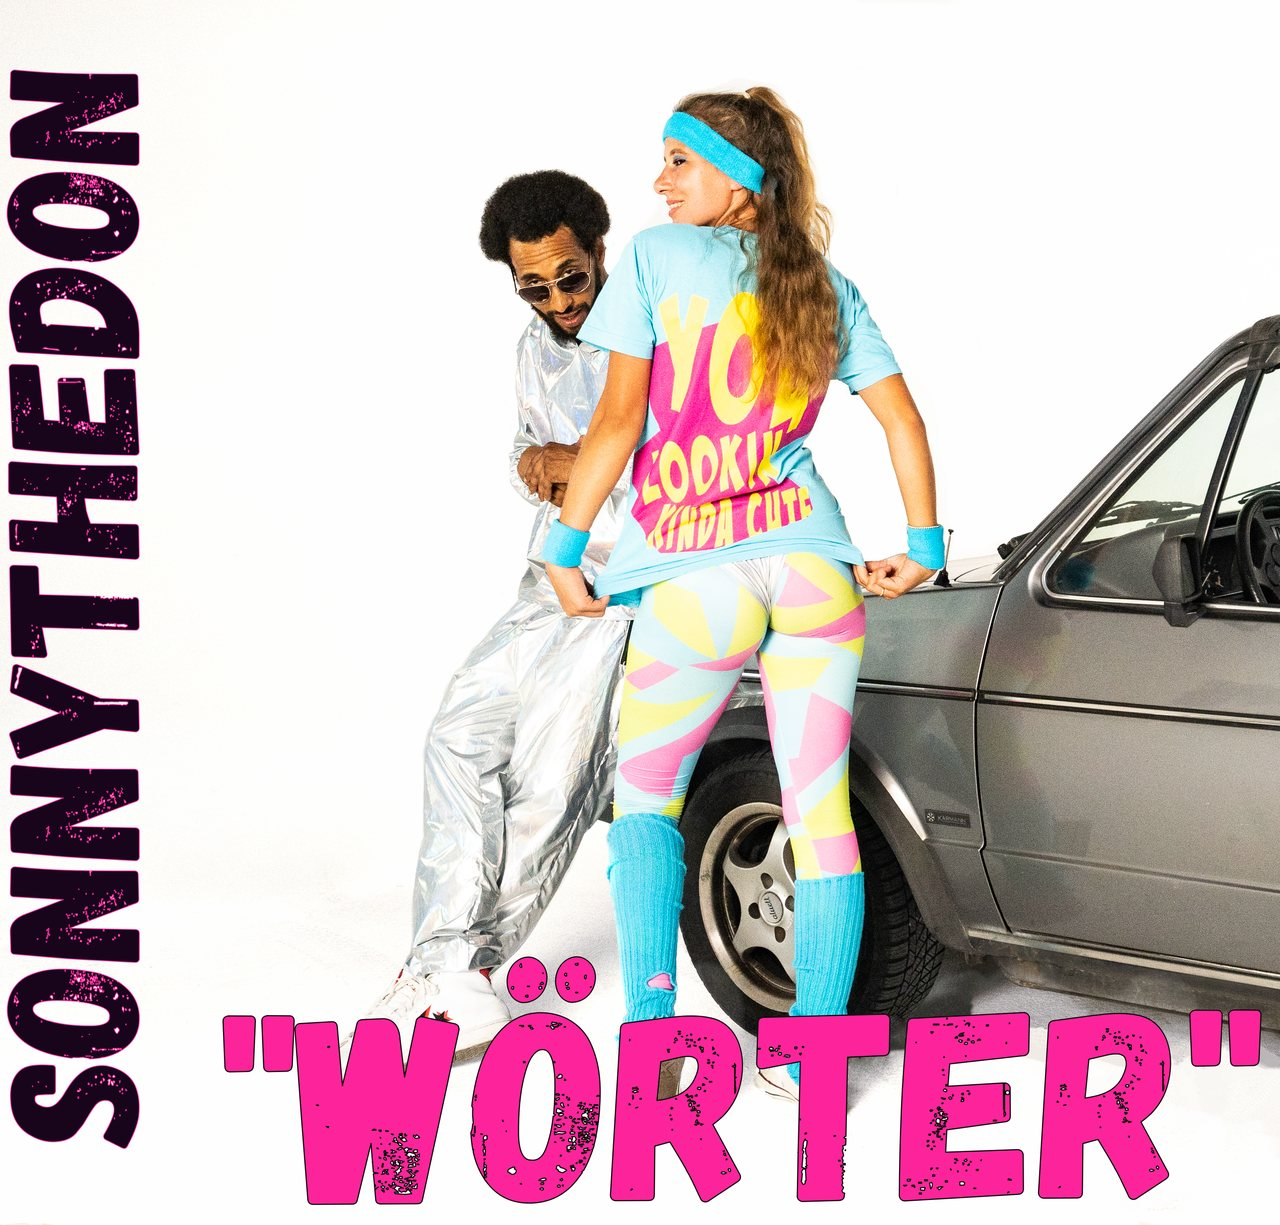 Upcoming: SonnyTheDon - Wörter (prod. JayJayBeatz)